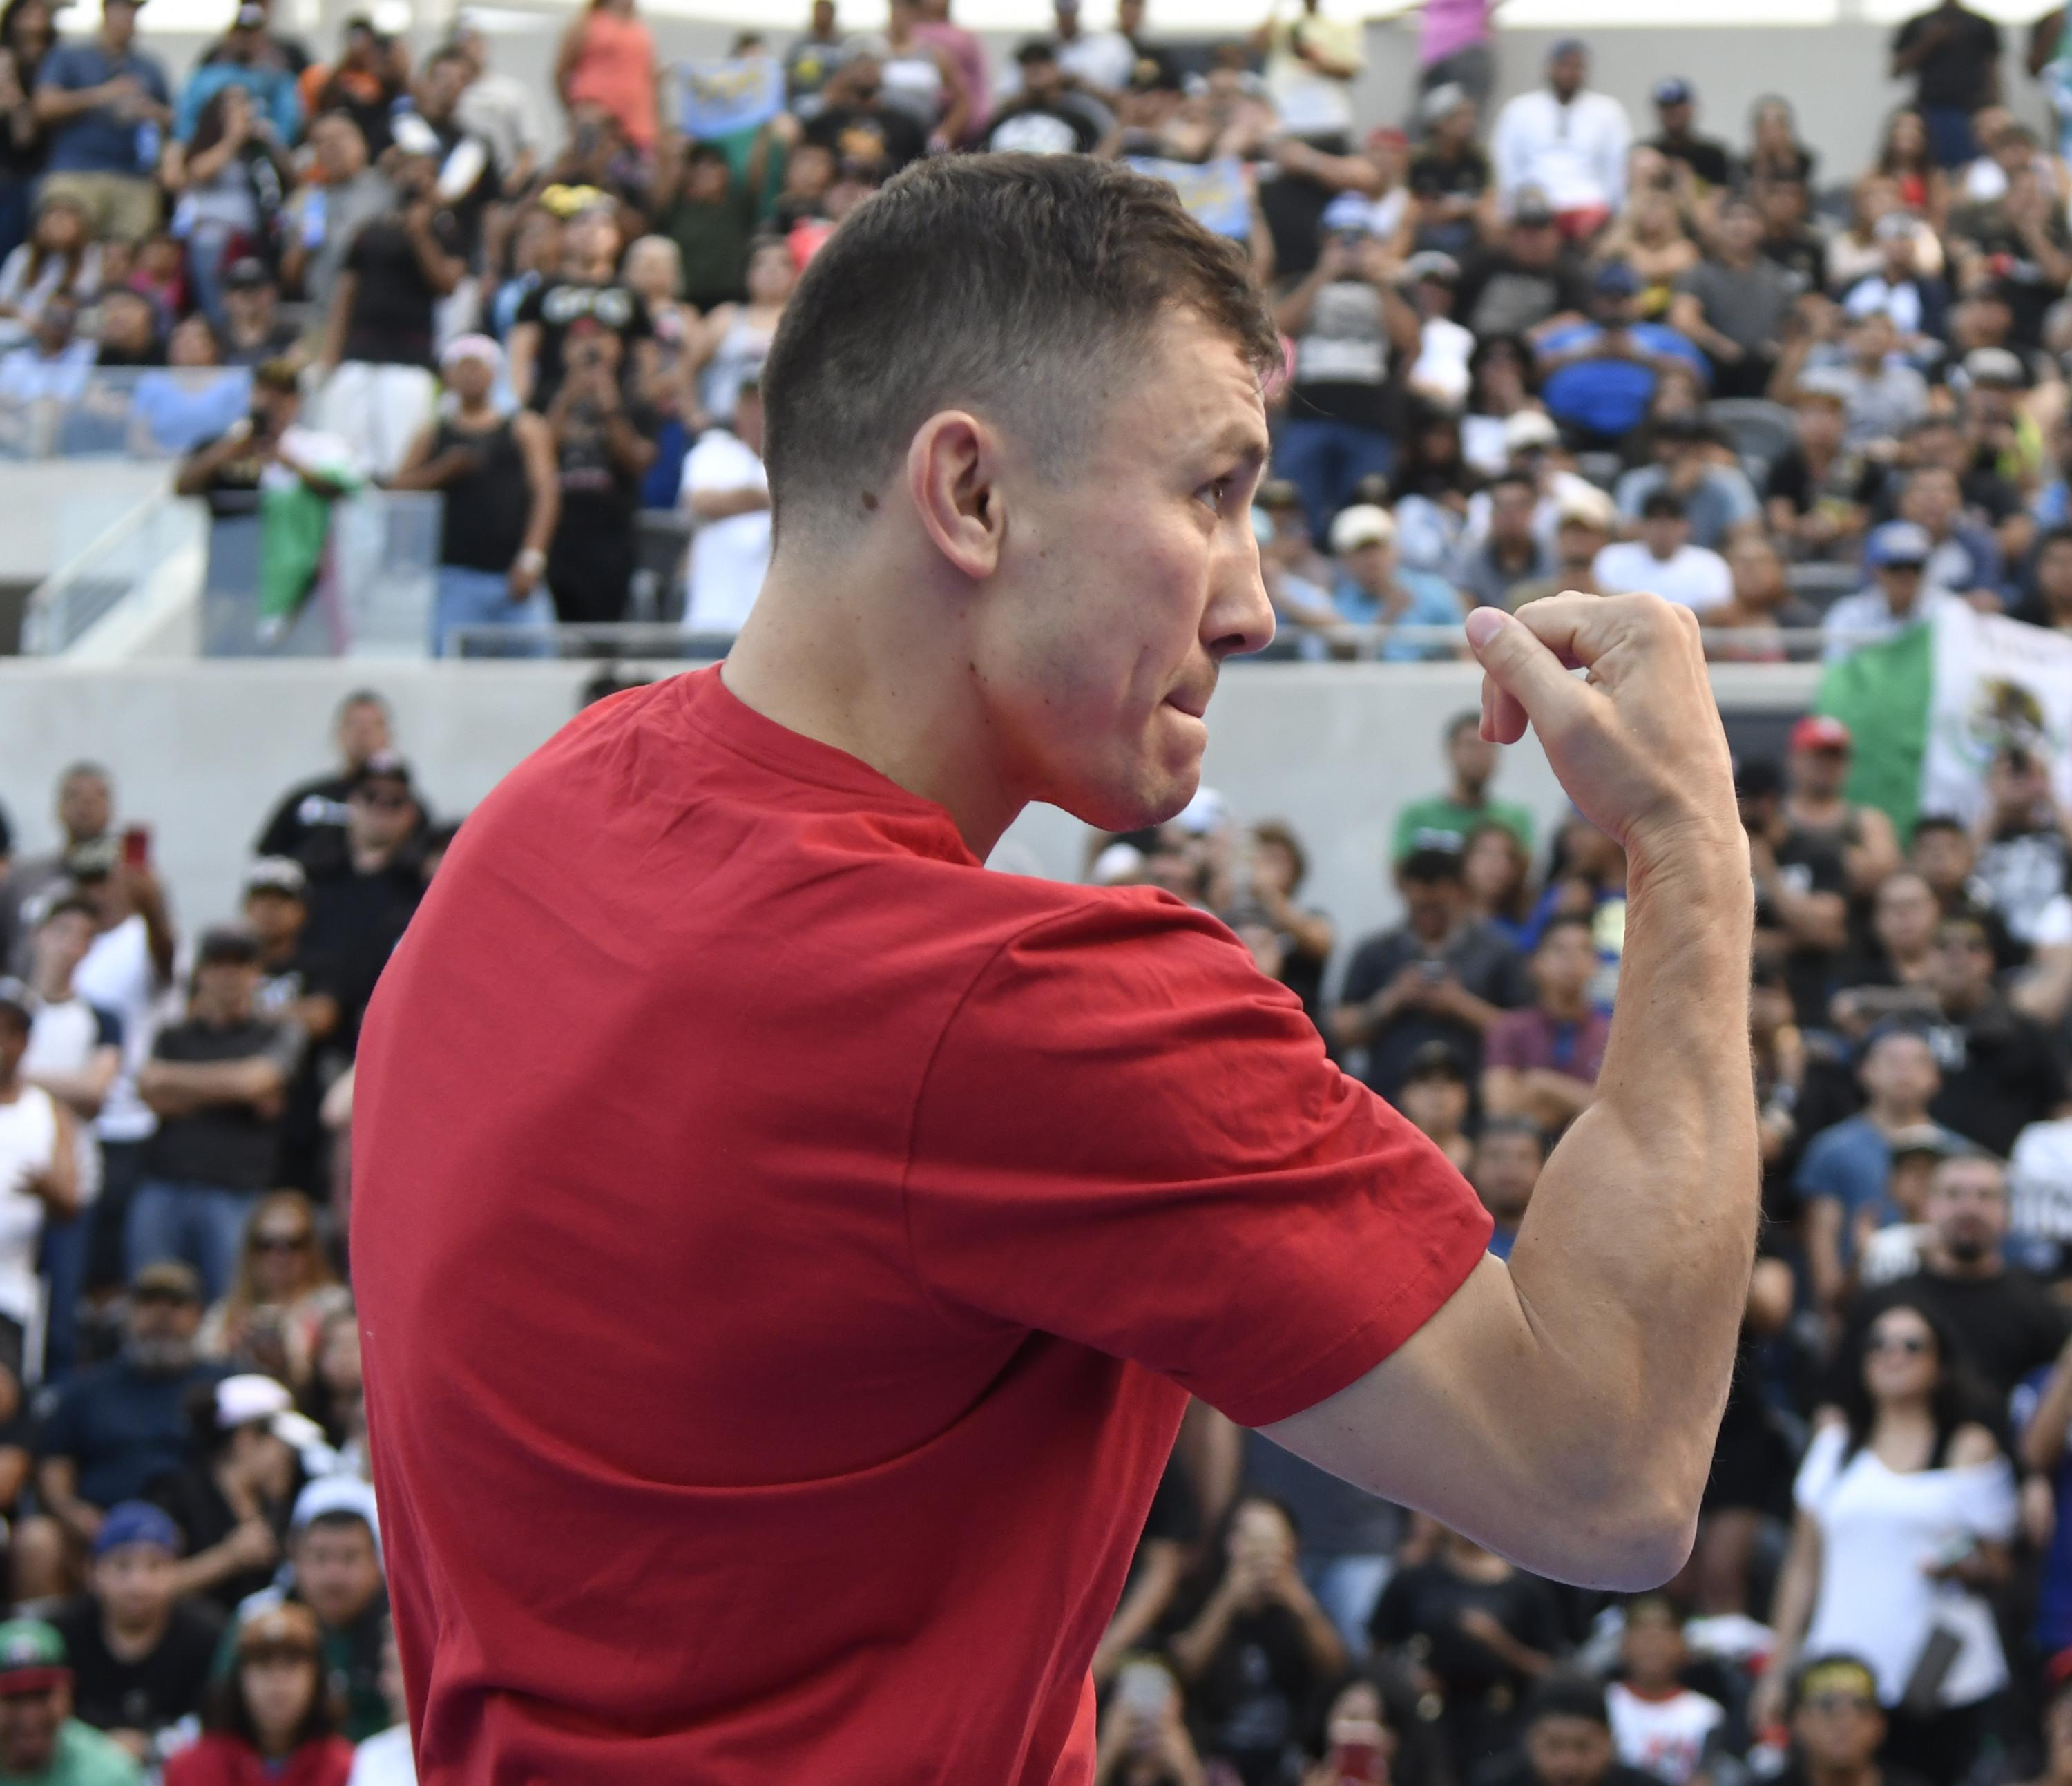 Gennady Golovkin has been showing supreme power in training